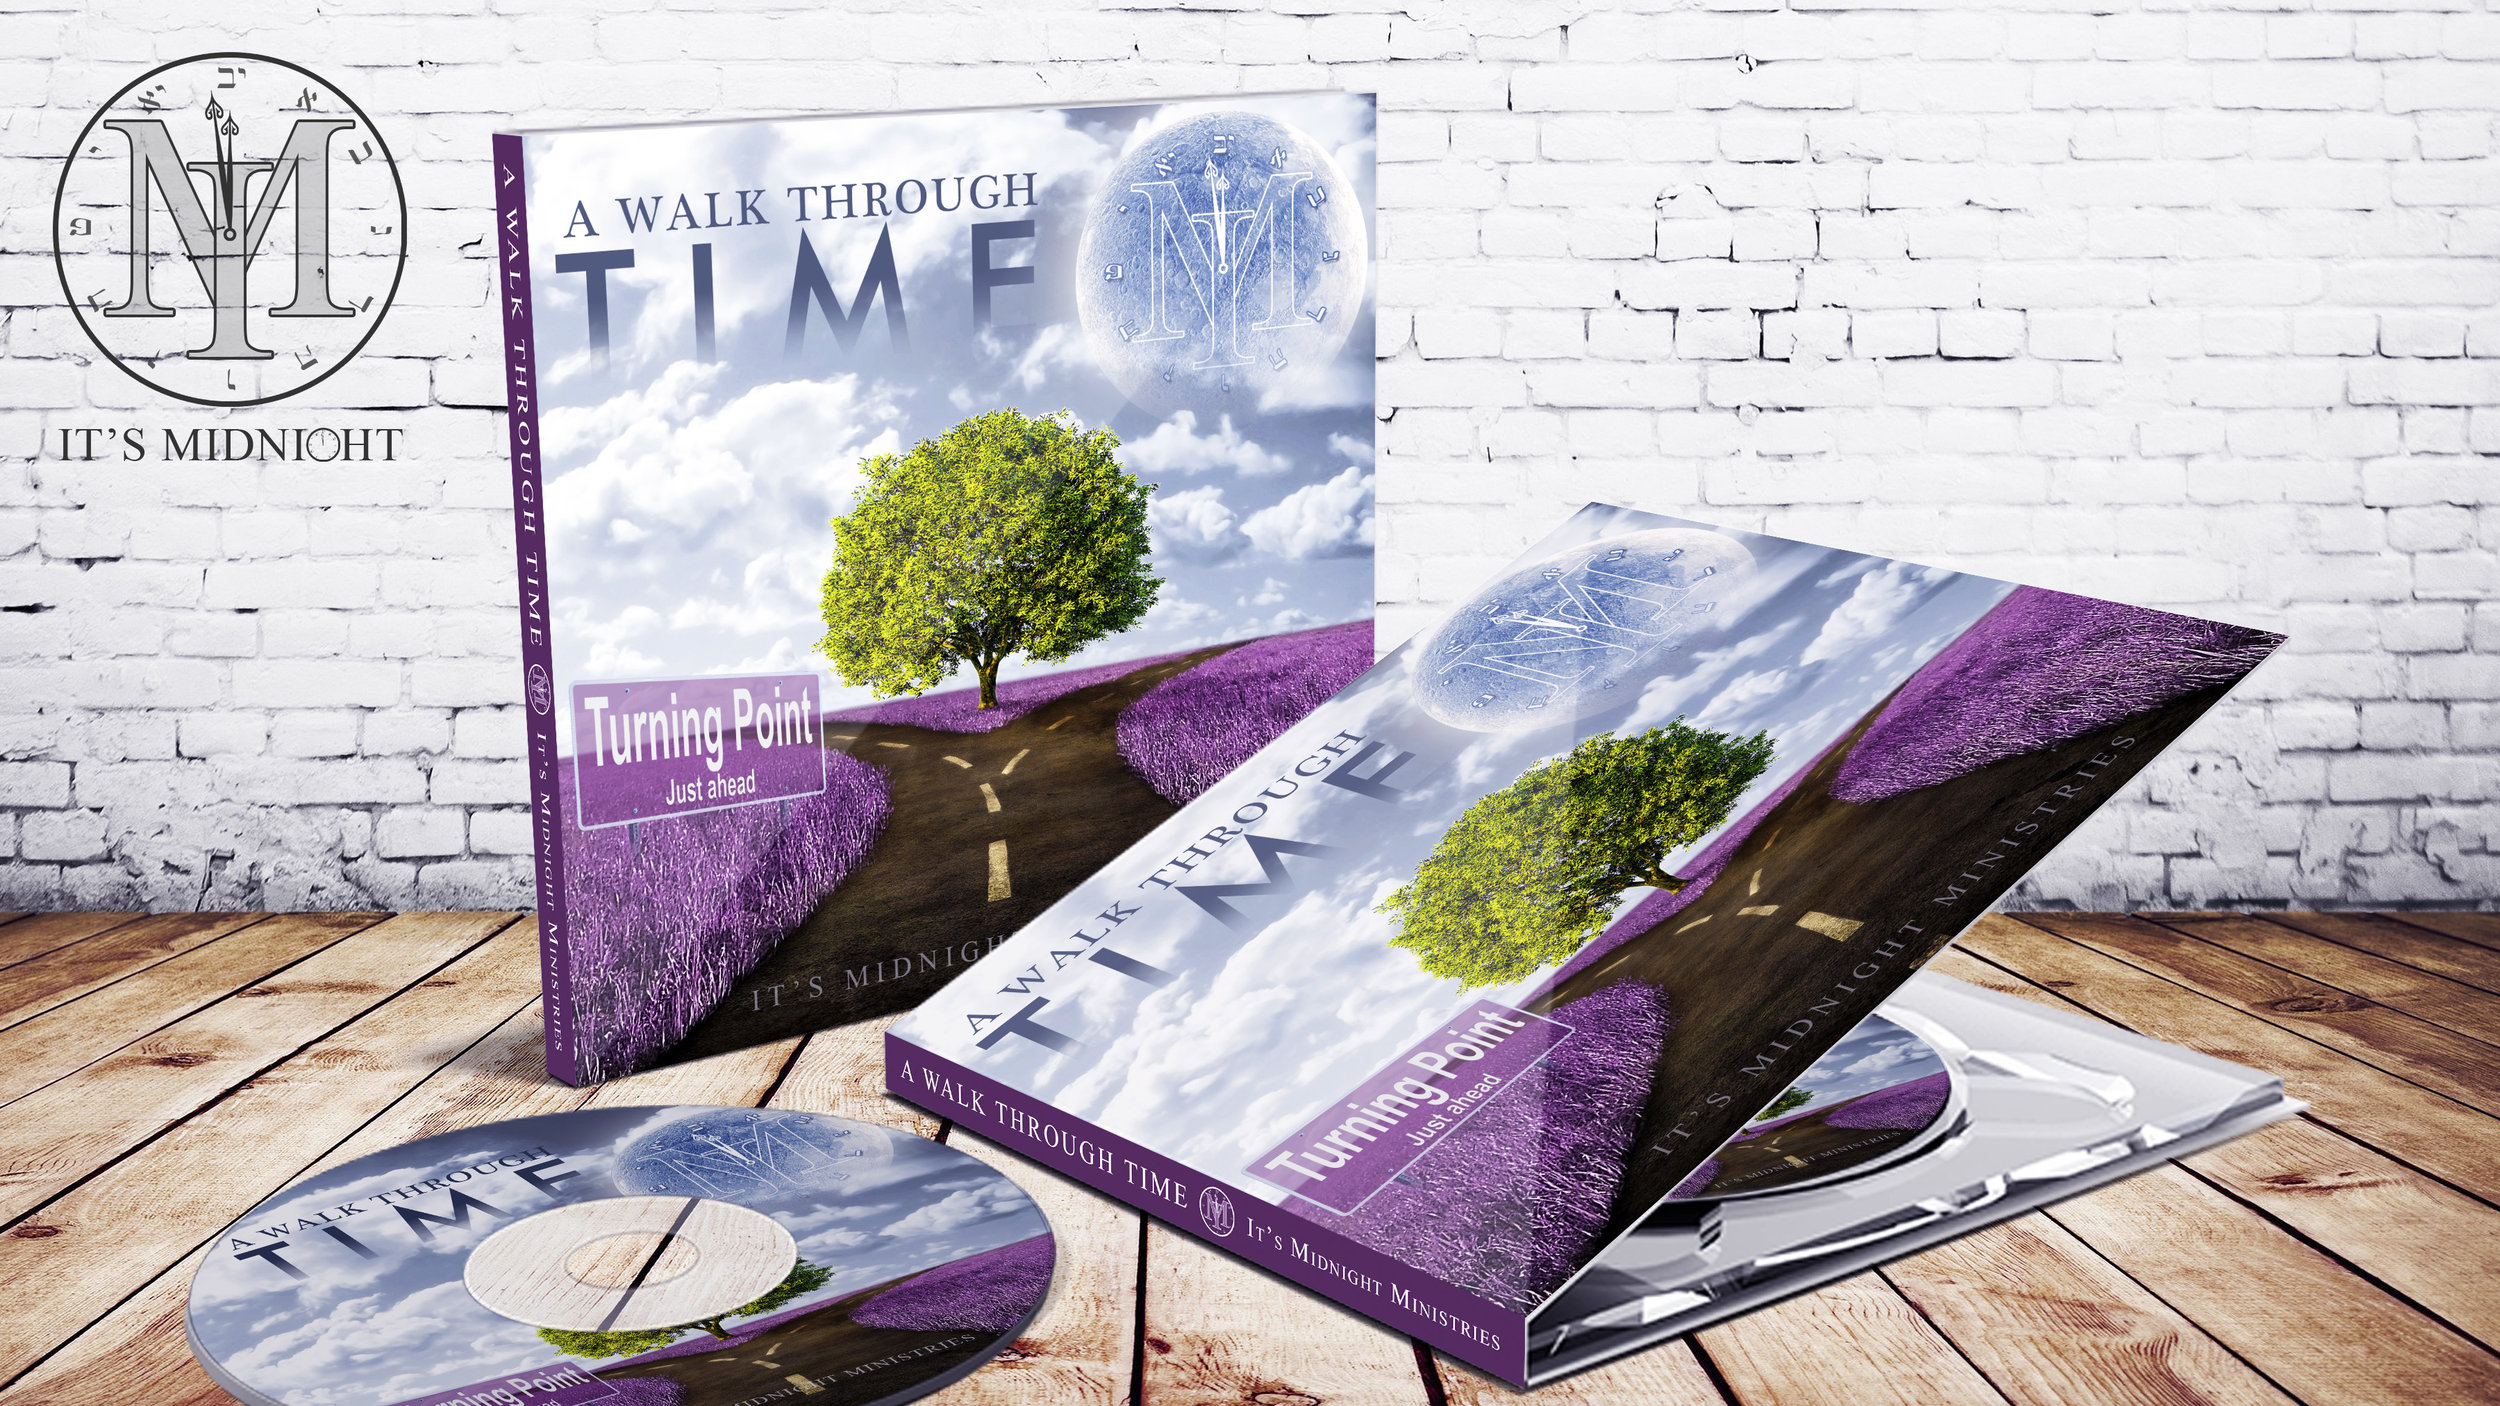 A Walk Through Time CD Mockup (16x9).jpg